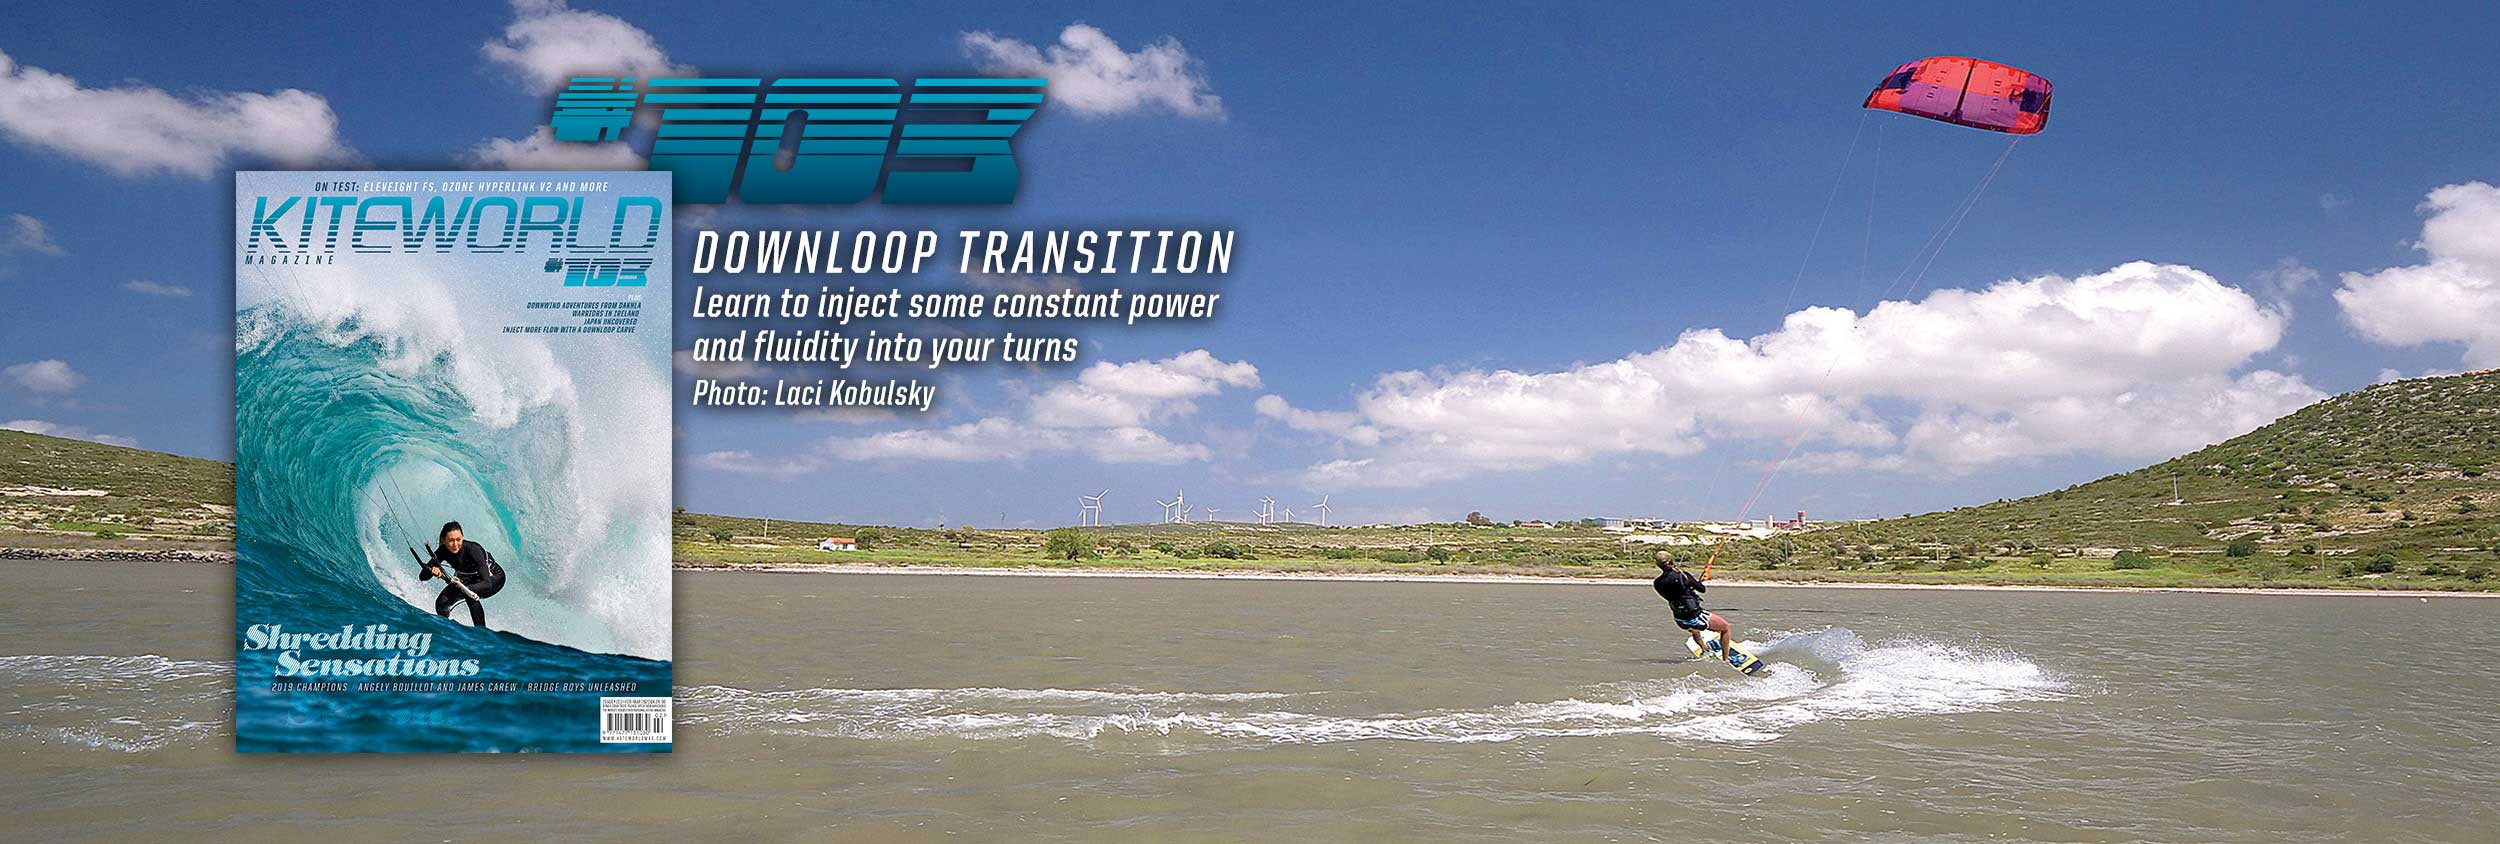 Learn the downloop carve